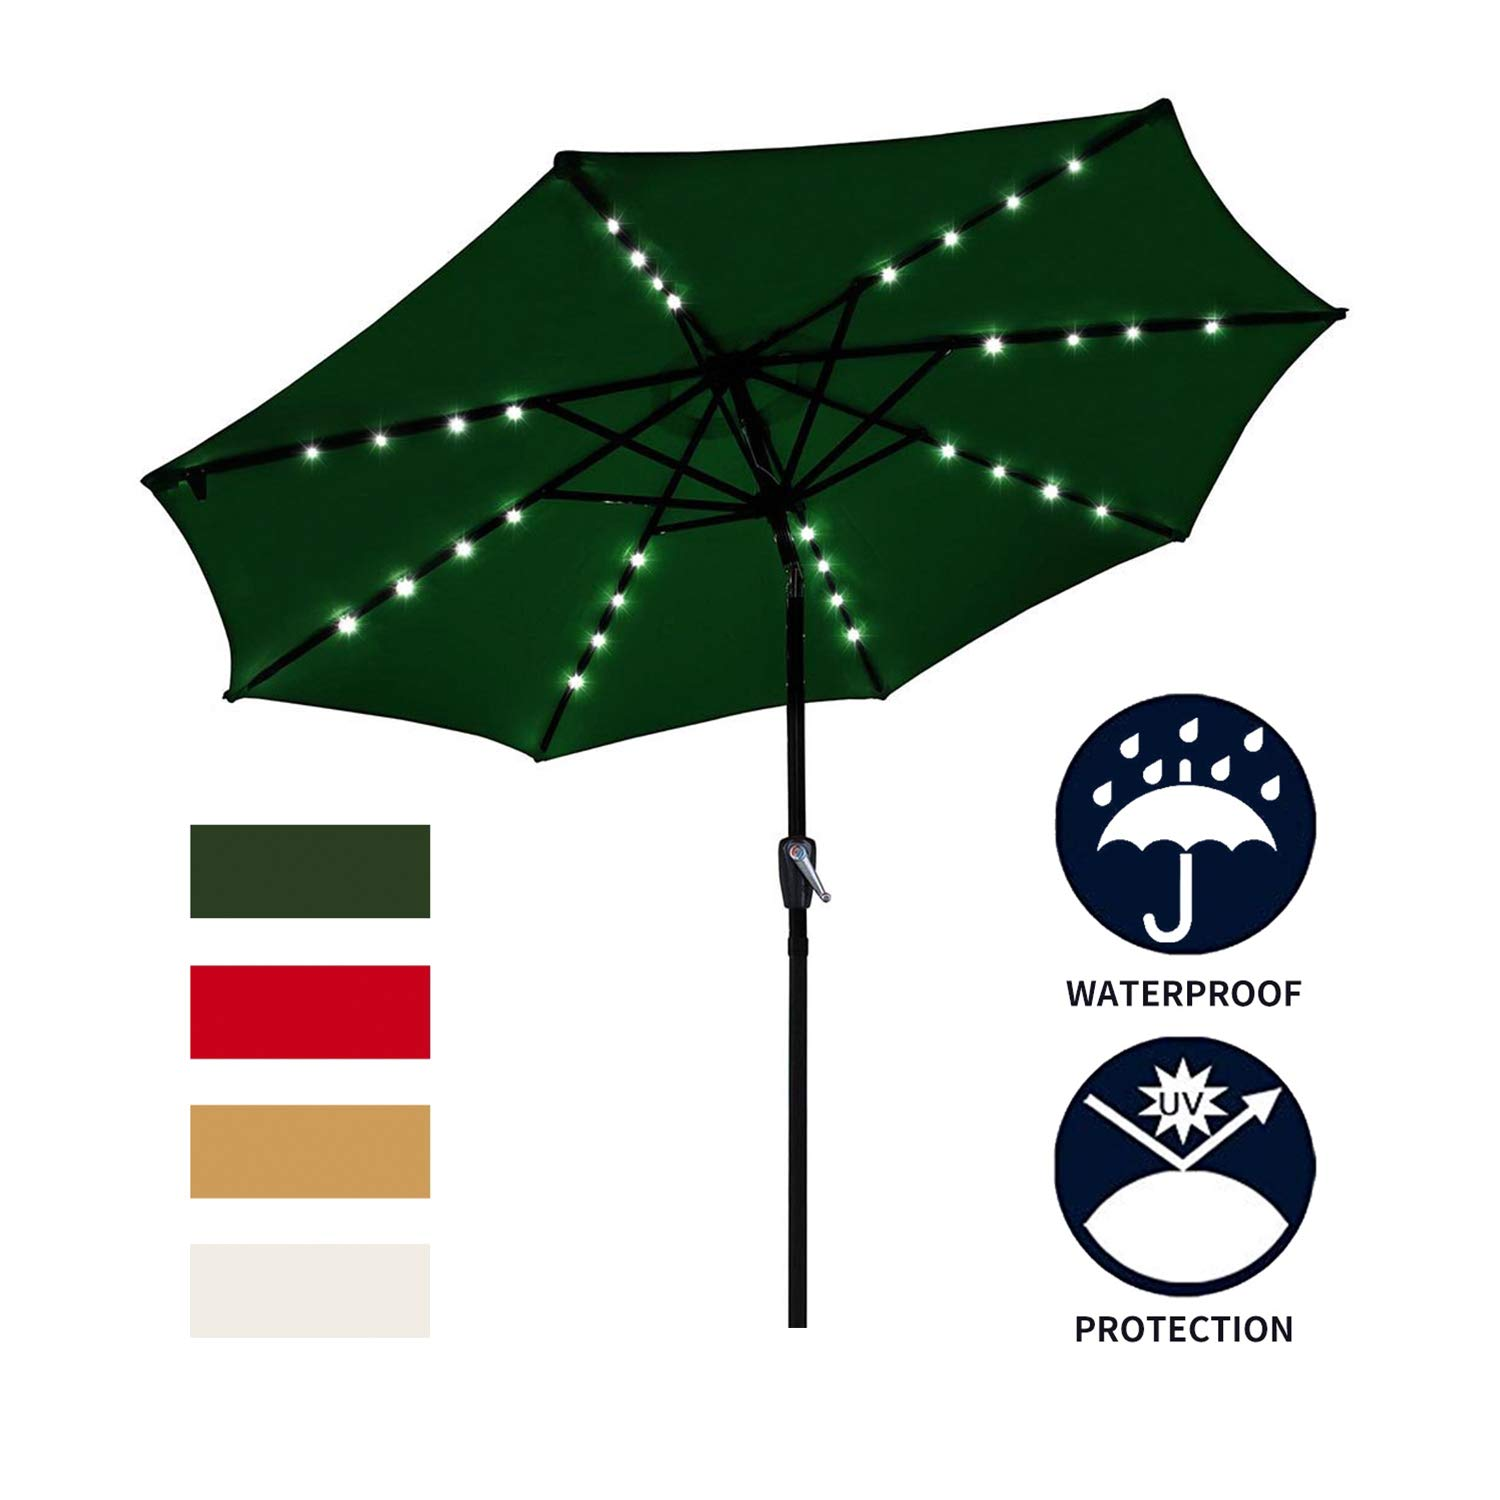 Ainfox 9ft Solar Patio Umbrella with LED Light, Steel Umbrella Ribs, Waterproof Prevent Bask in for Garden, Indoor, Outdoor Use Without Base (Green)